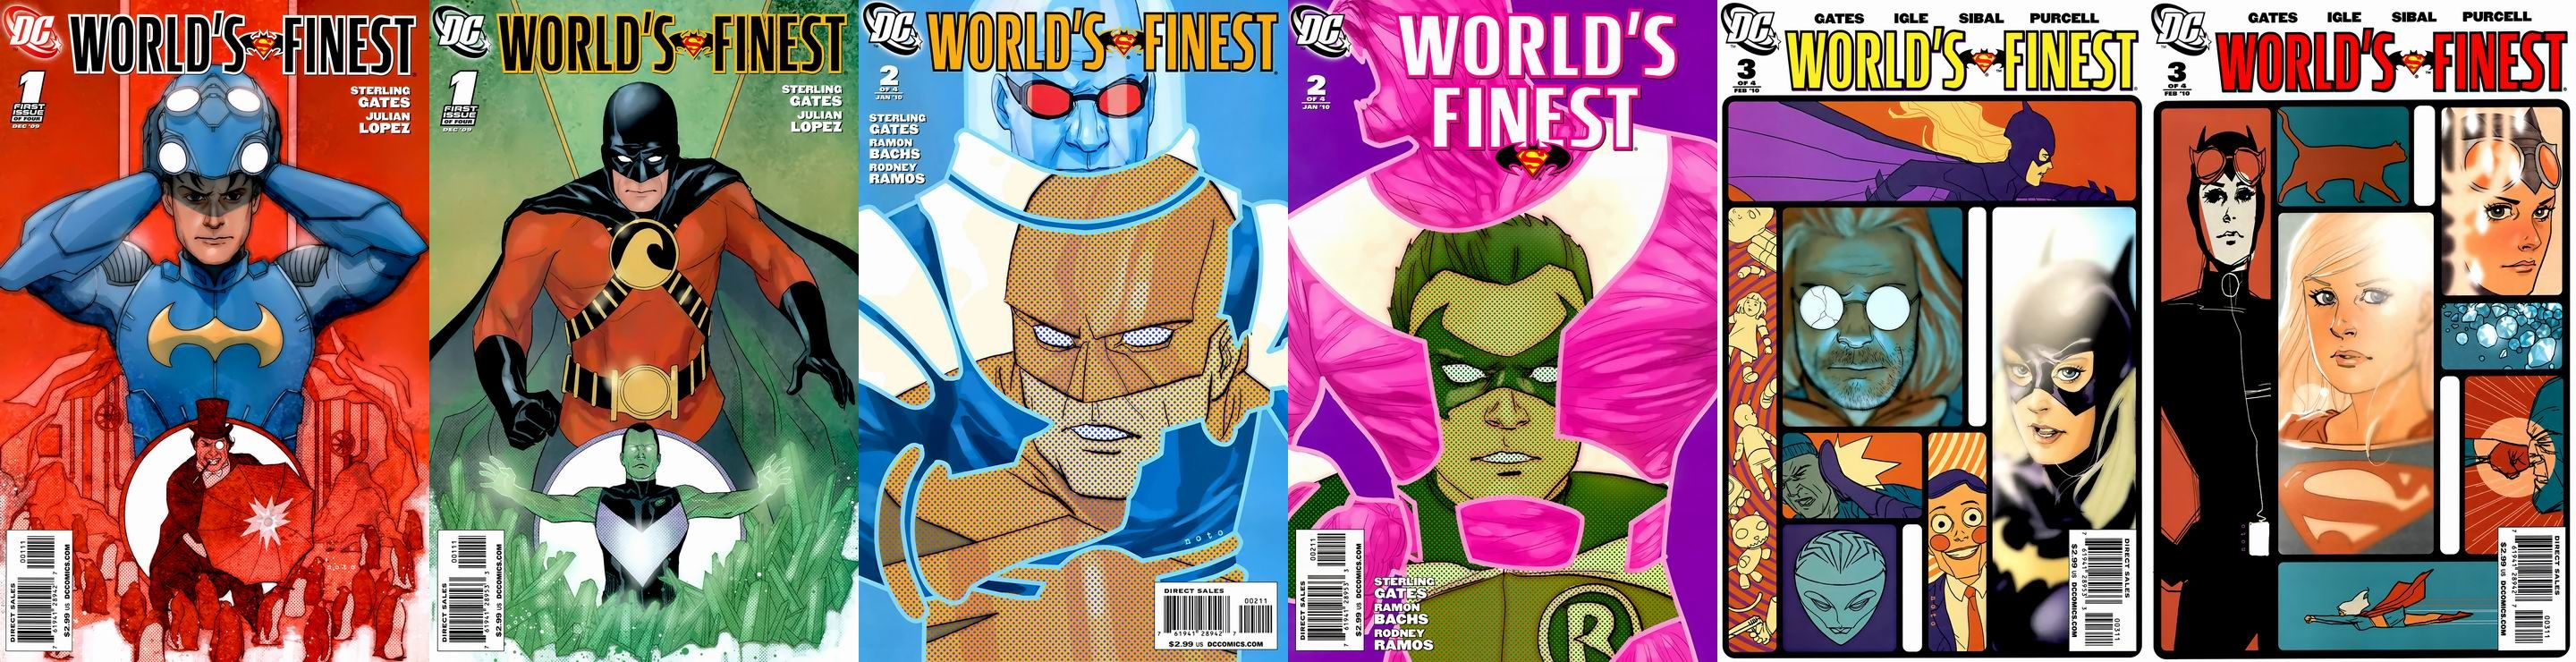 World's Finest #1-3 (Of 4) Update